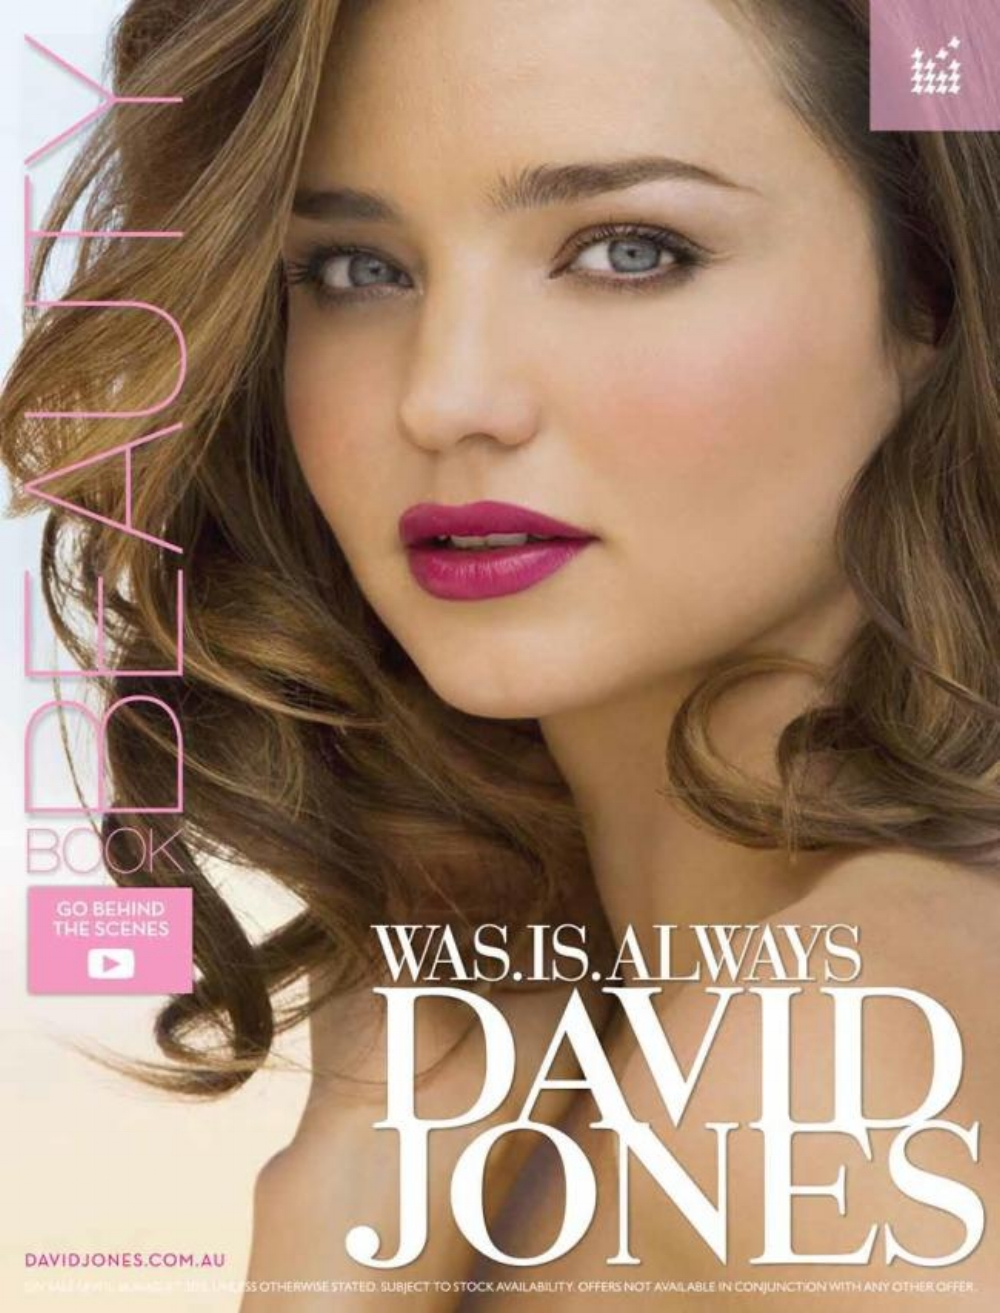 Miranda_Kerr_David_Jones_Beauty_Breakdown.jpg